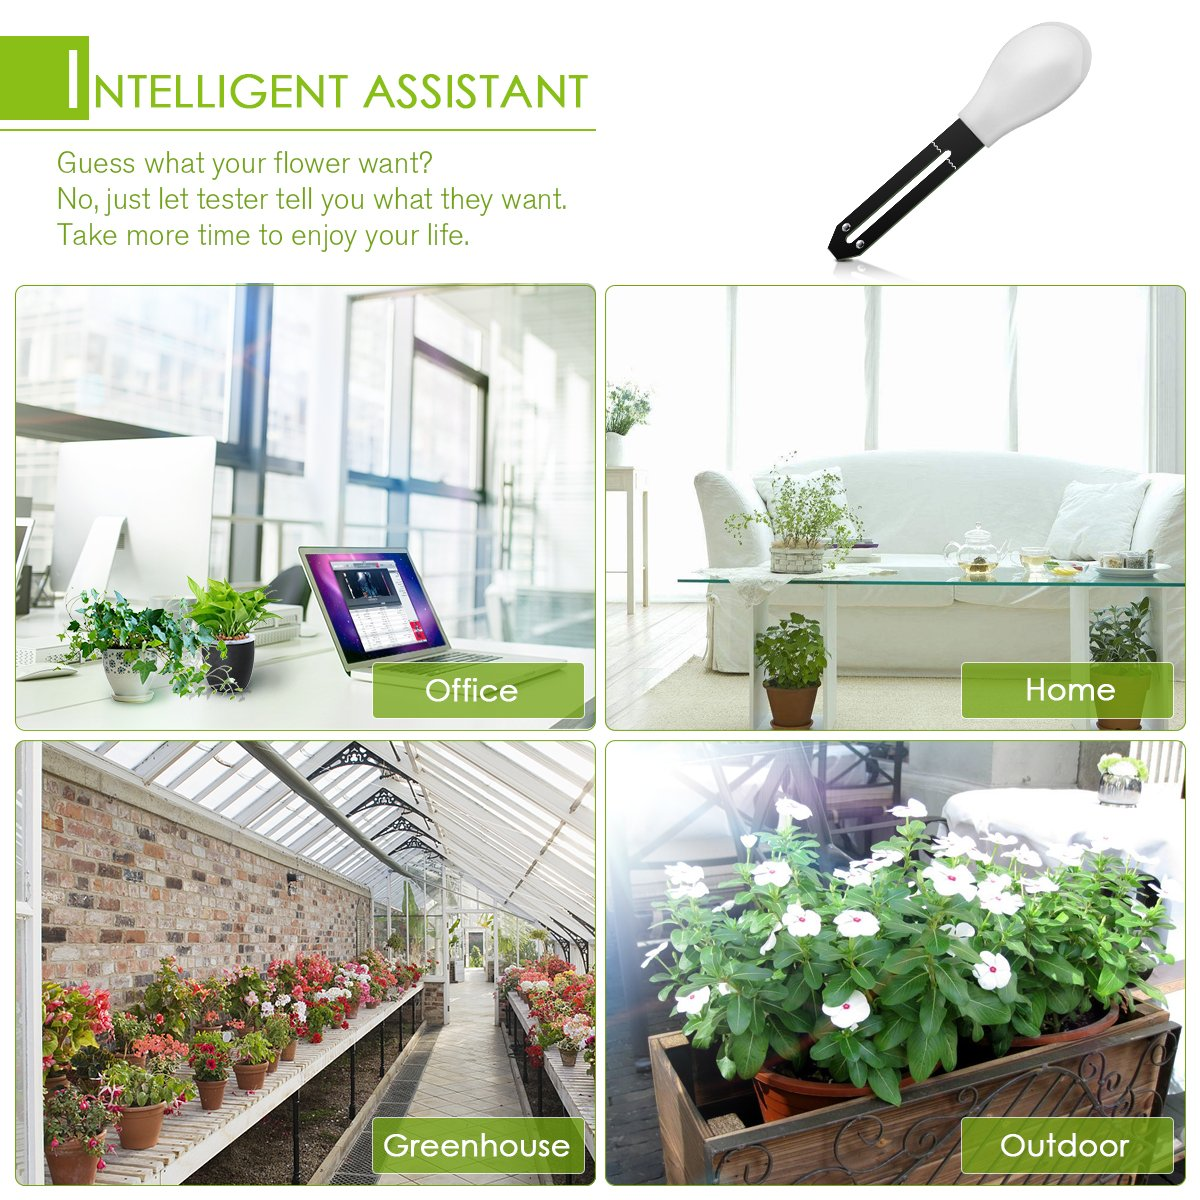 DIGOO DG-TRT1 3 in 1 Soil Tester Moisture Meter, Garden Potted Intelligent Plant Detector, Nutrient Monitor Light Tester White by DIGOO (Image #7)